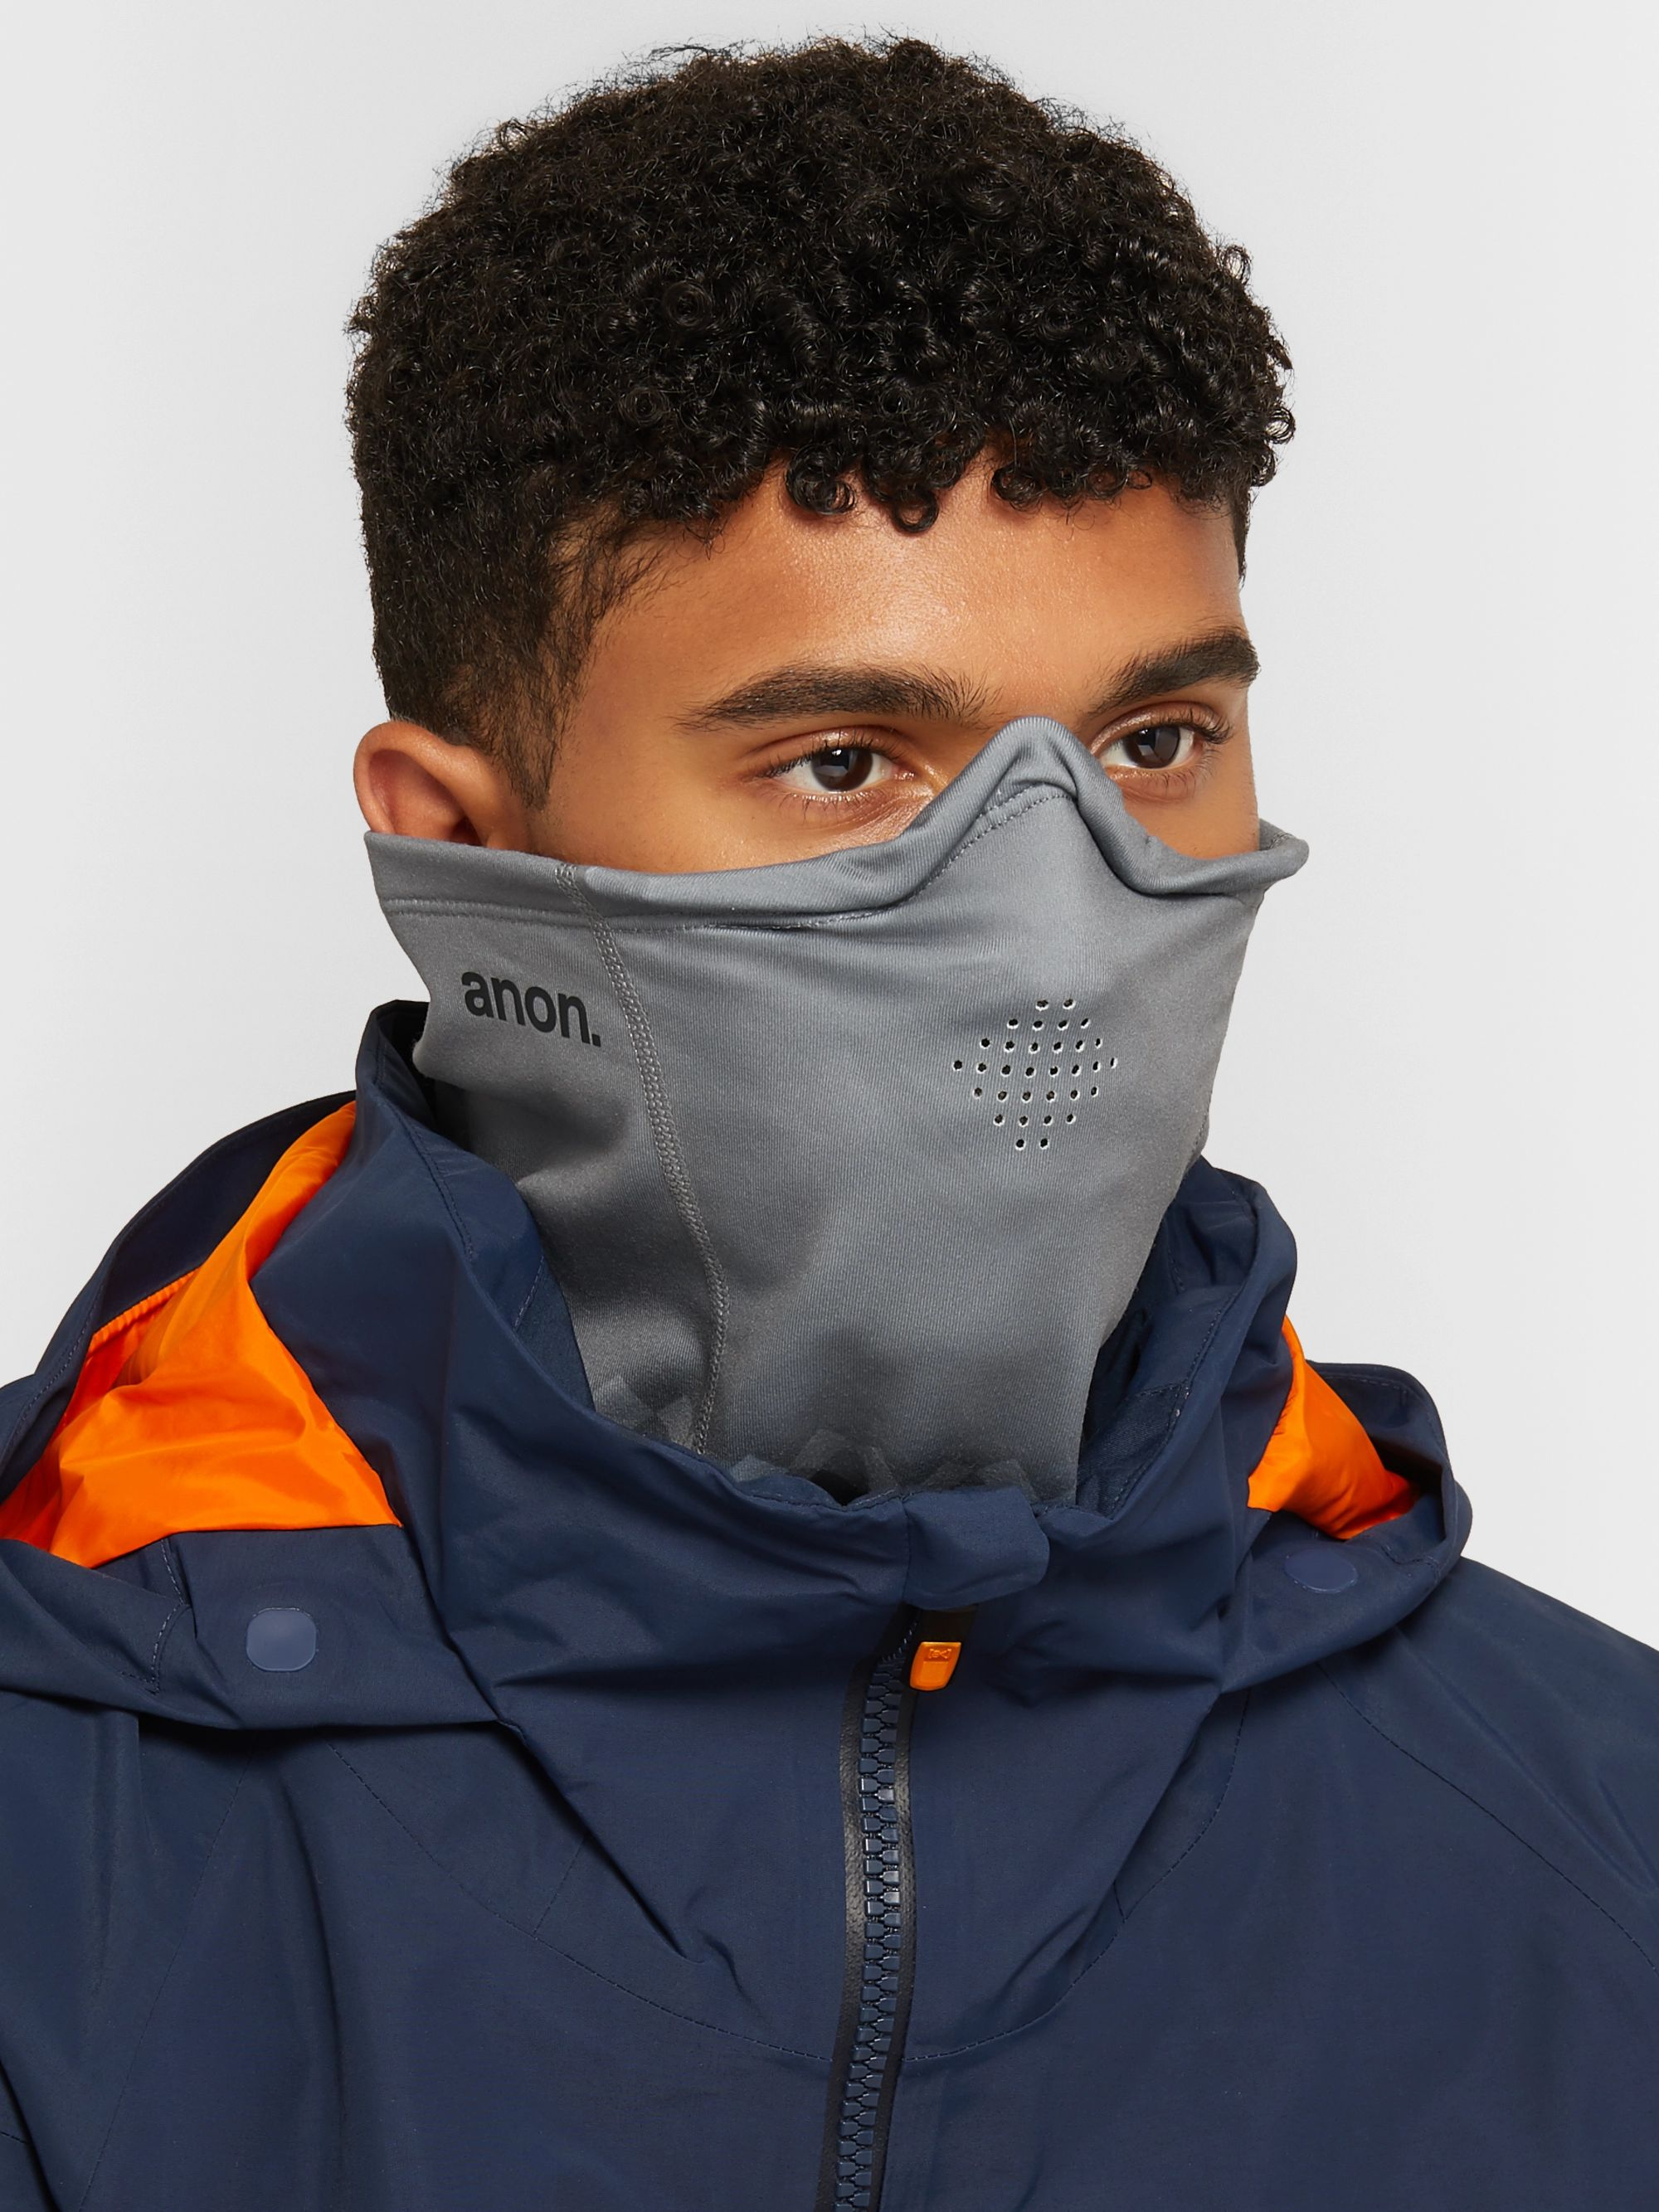 Anon MFI Goggle-Compatible Neck Warmer